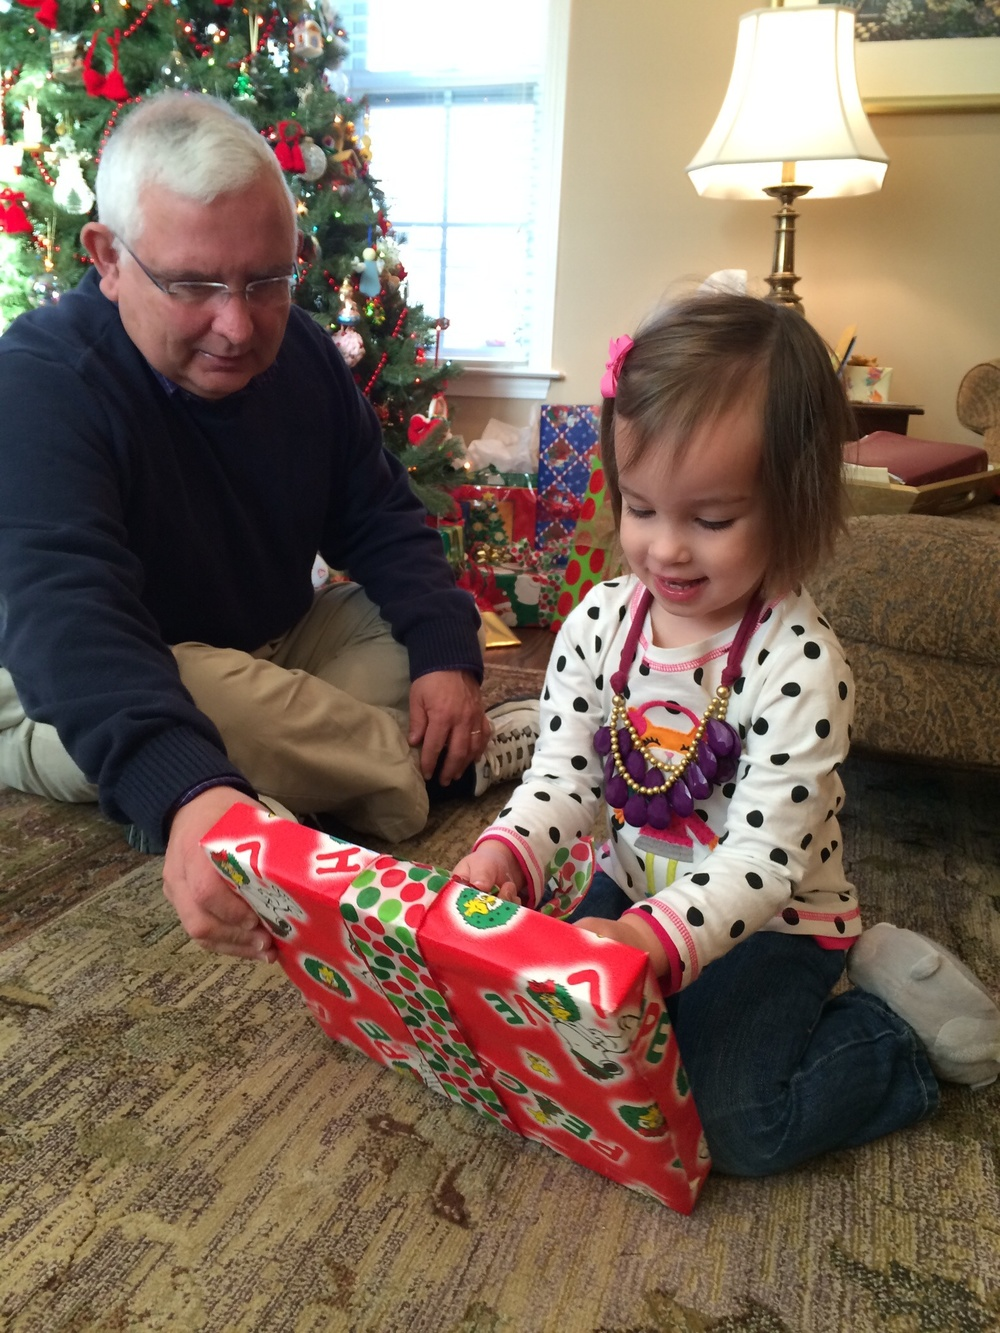 There's just something so fun and exciting about Christmas through the eyes of a child, no?